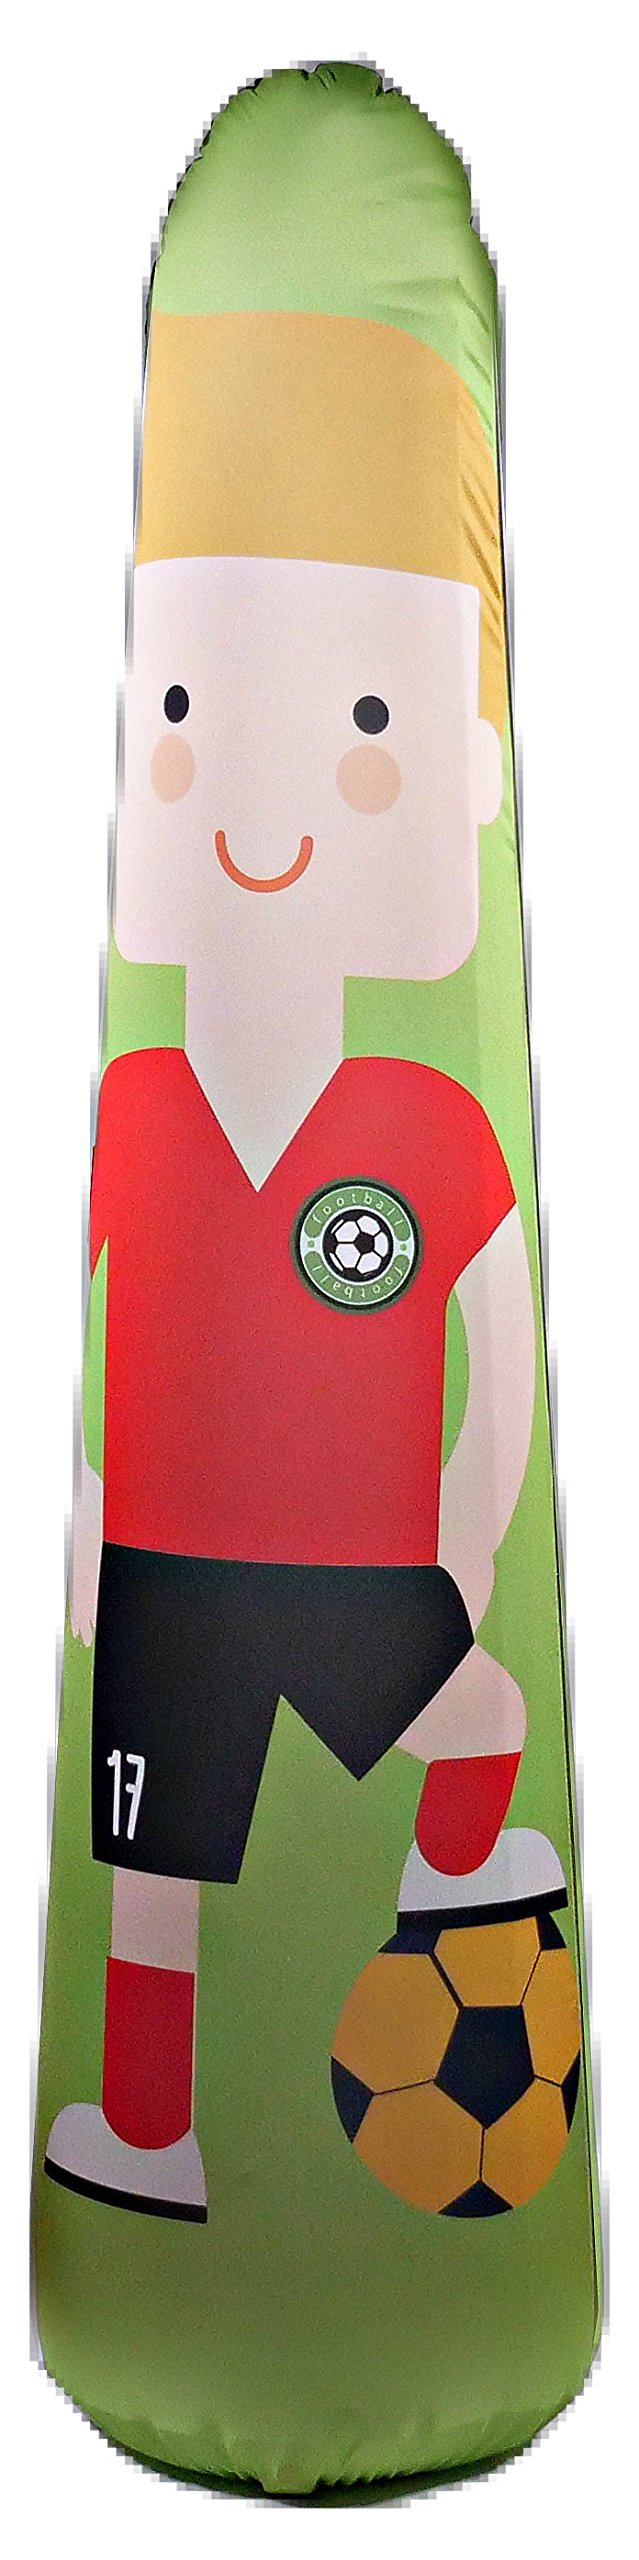 BONK FIT High Performance Polyurethane Inflatable Target, PVC-Free Pop Up Training Mannequin with One Year Warranty and Machine Washable Cover - Soccer 5ft by BONK FIT (Image #1)